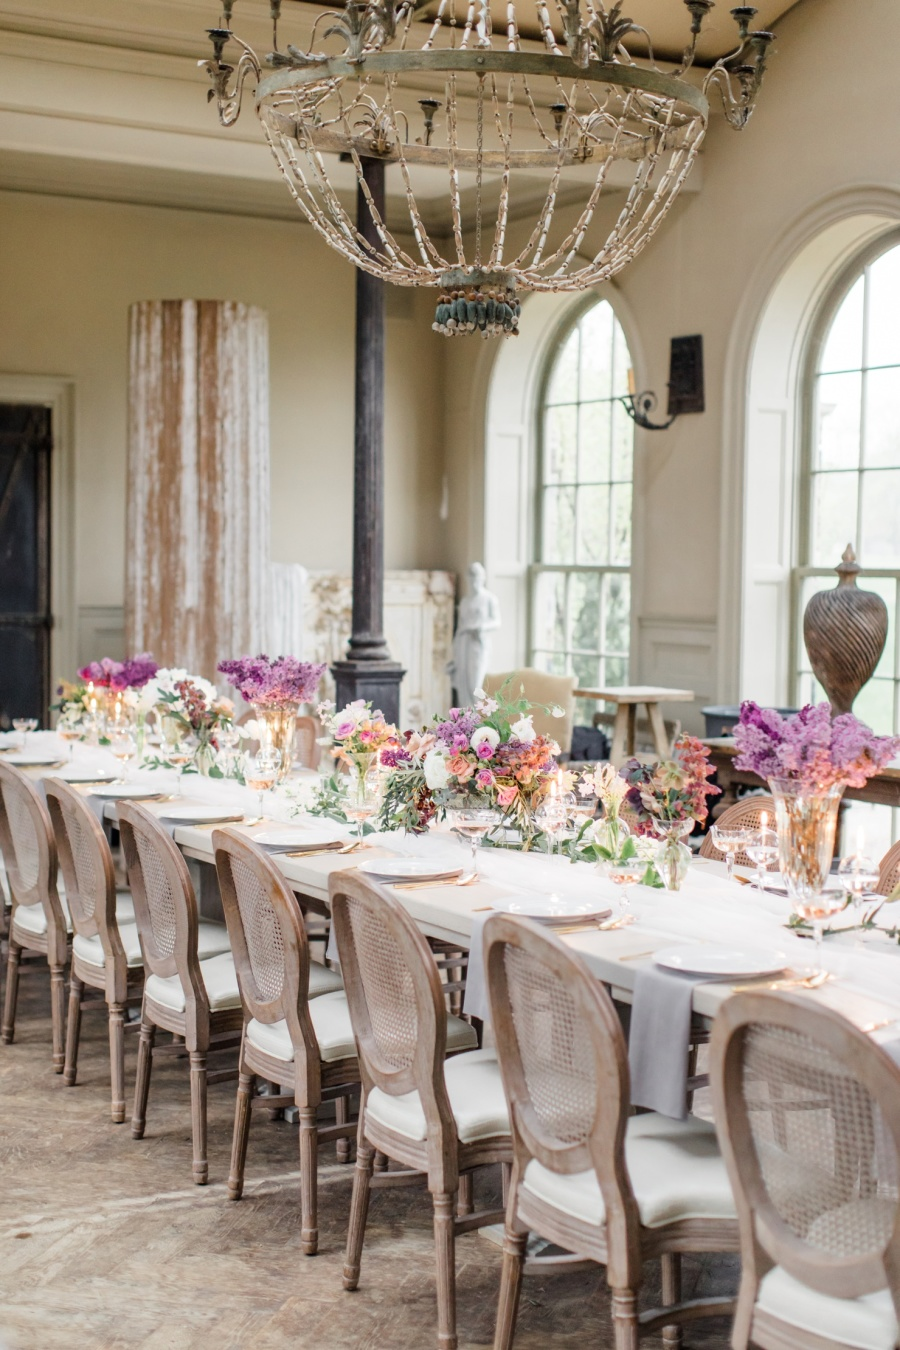 The reception was accentuated with a large vintage chandelier